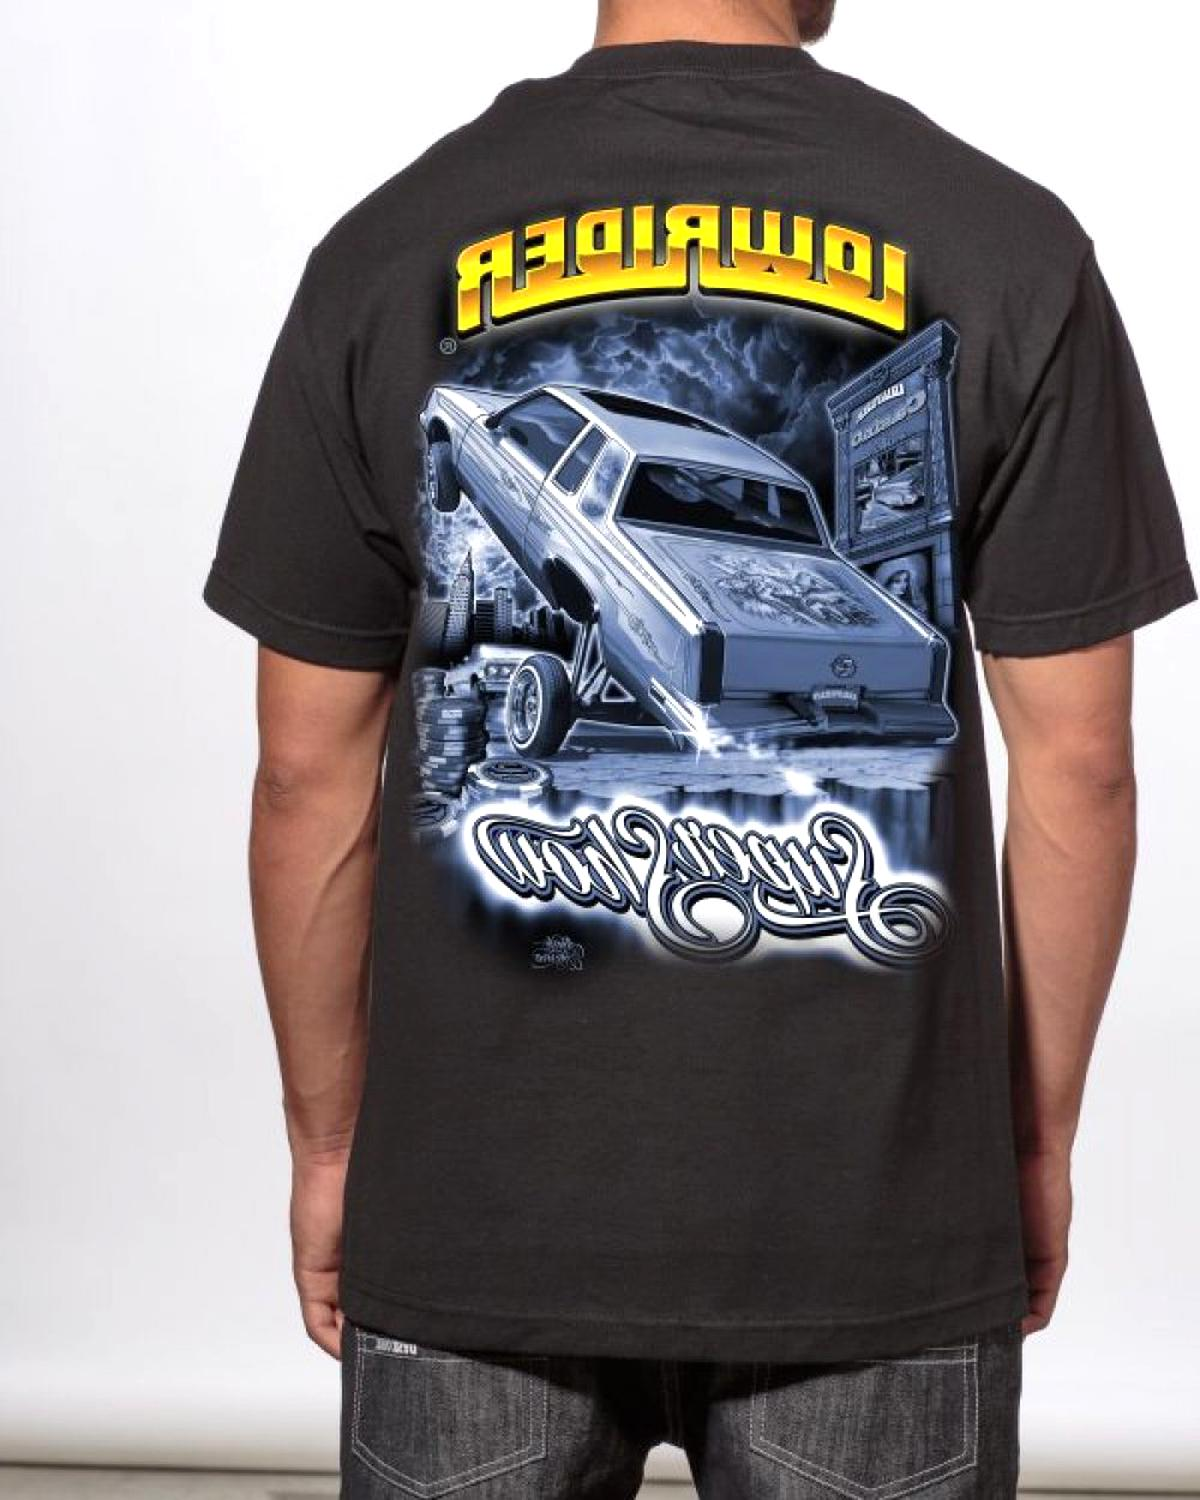 lowrider shirt for sale